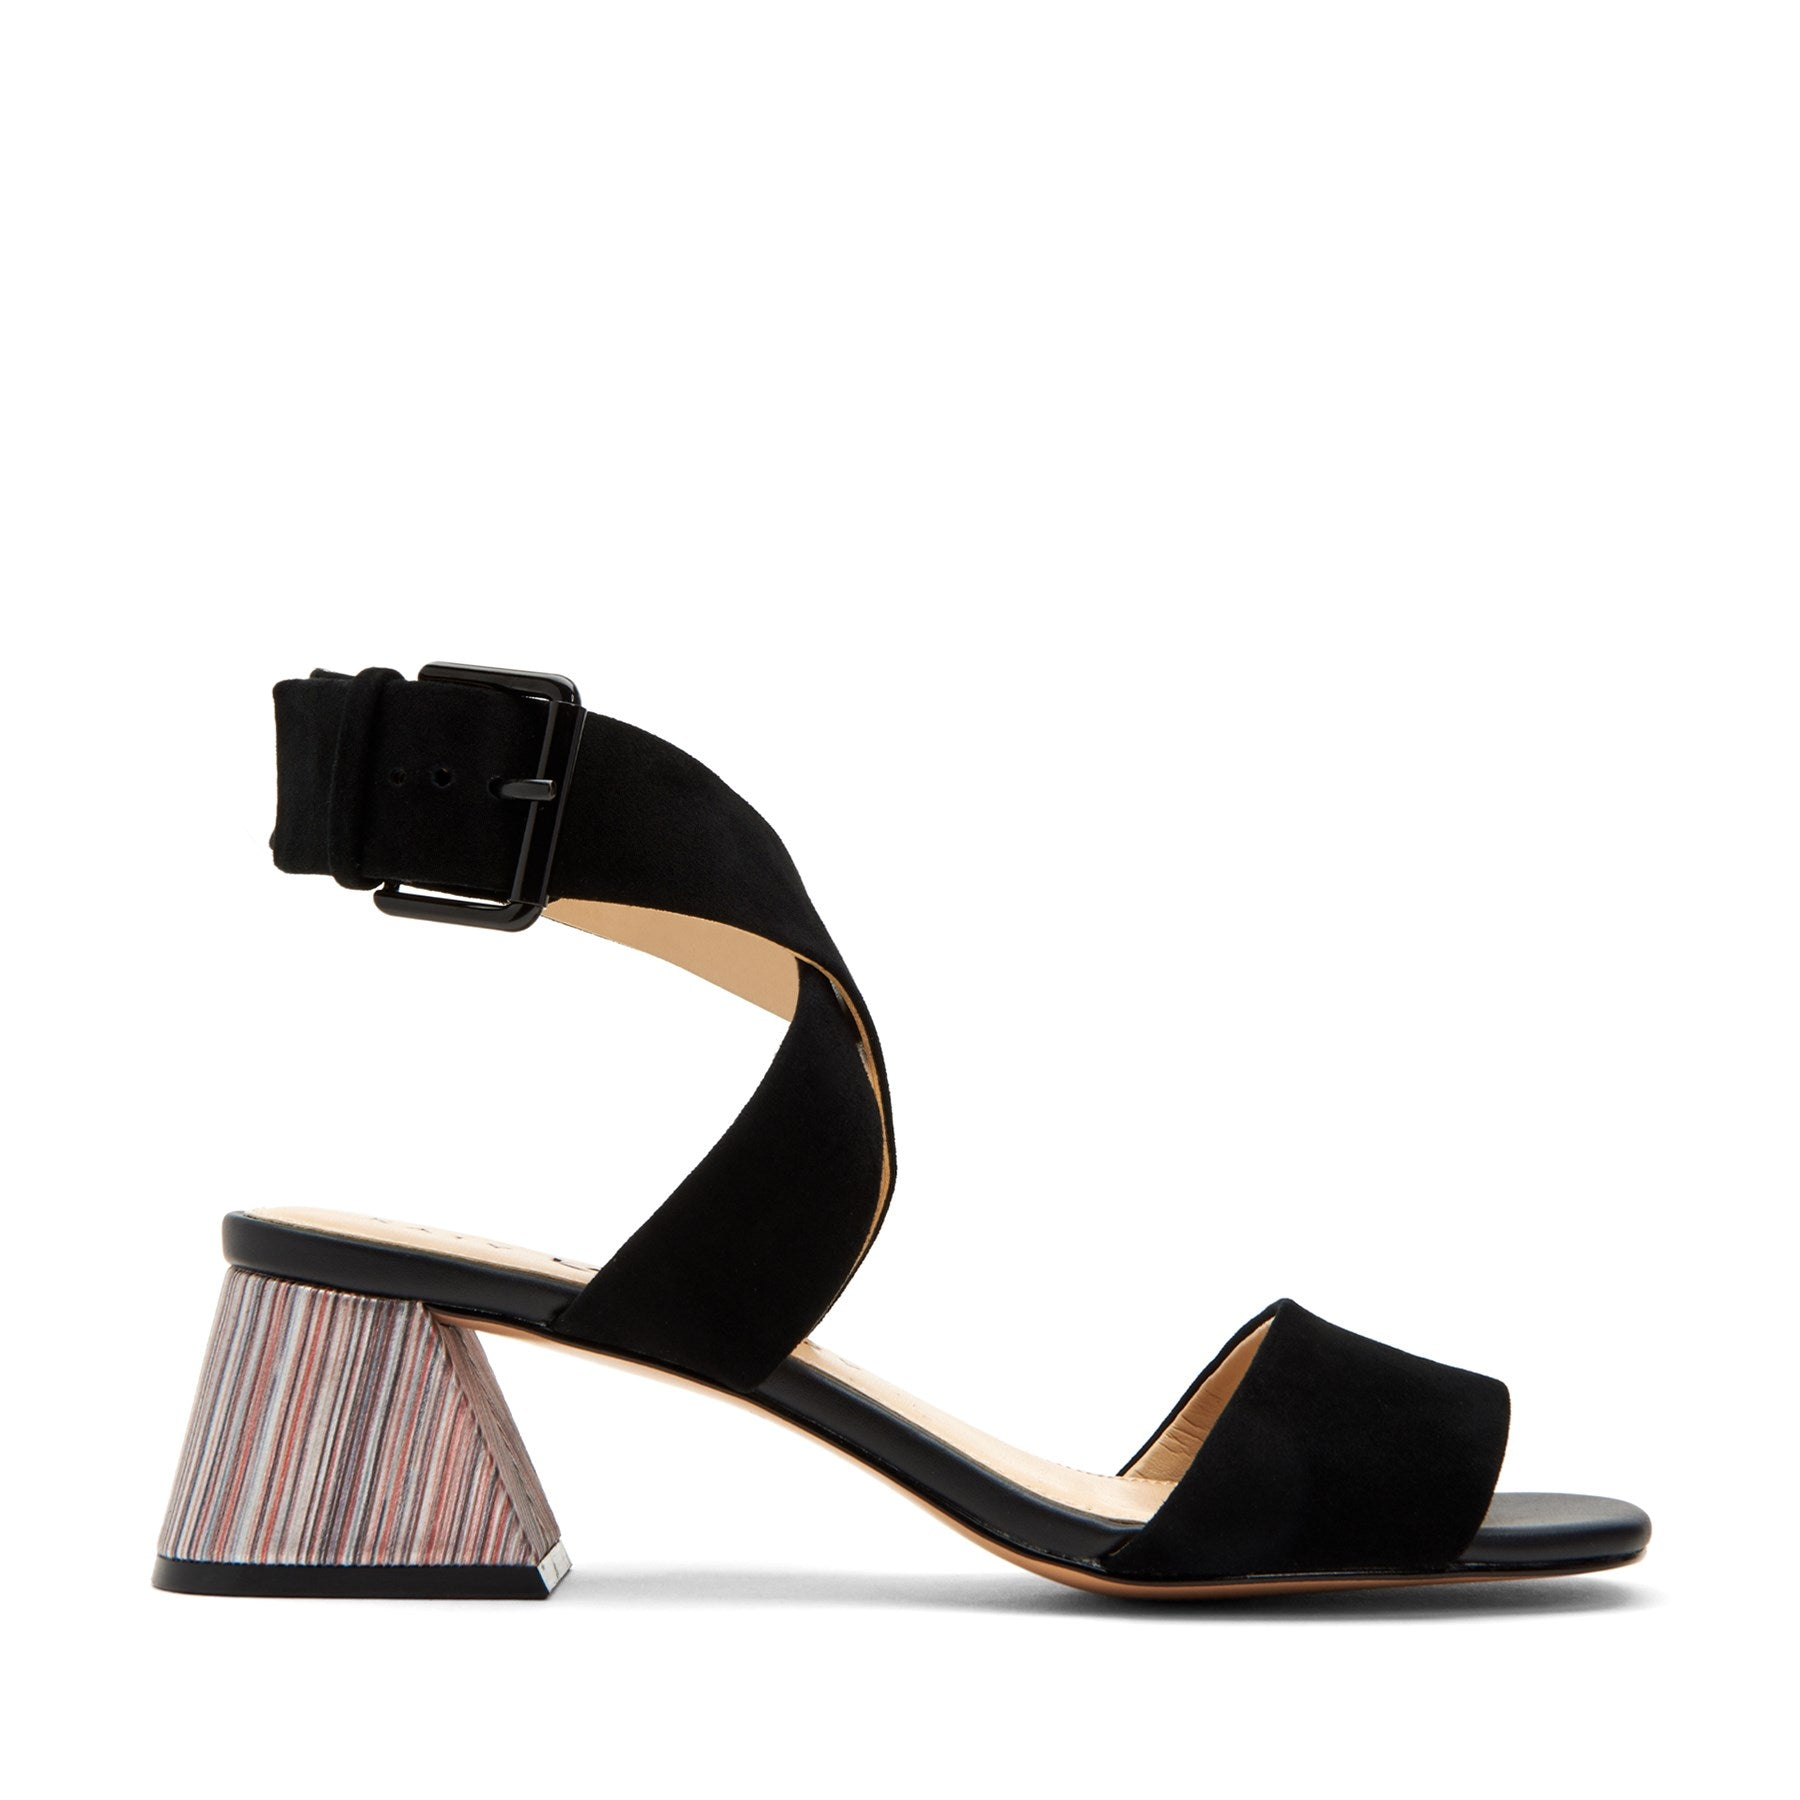 katy perry heeled sandal in black size 6 | the albee